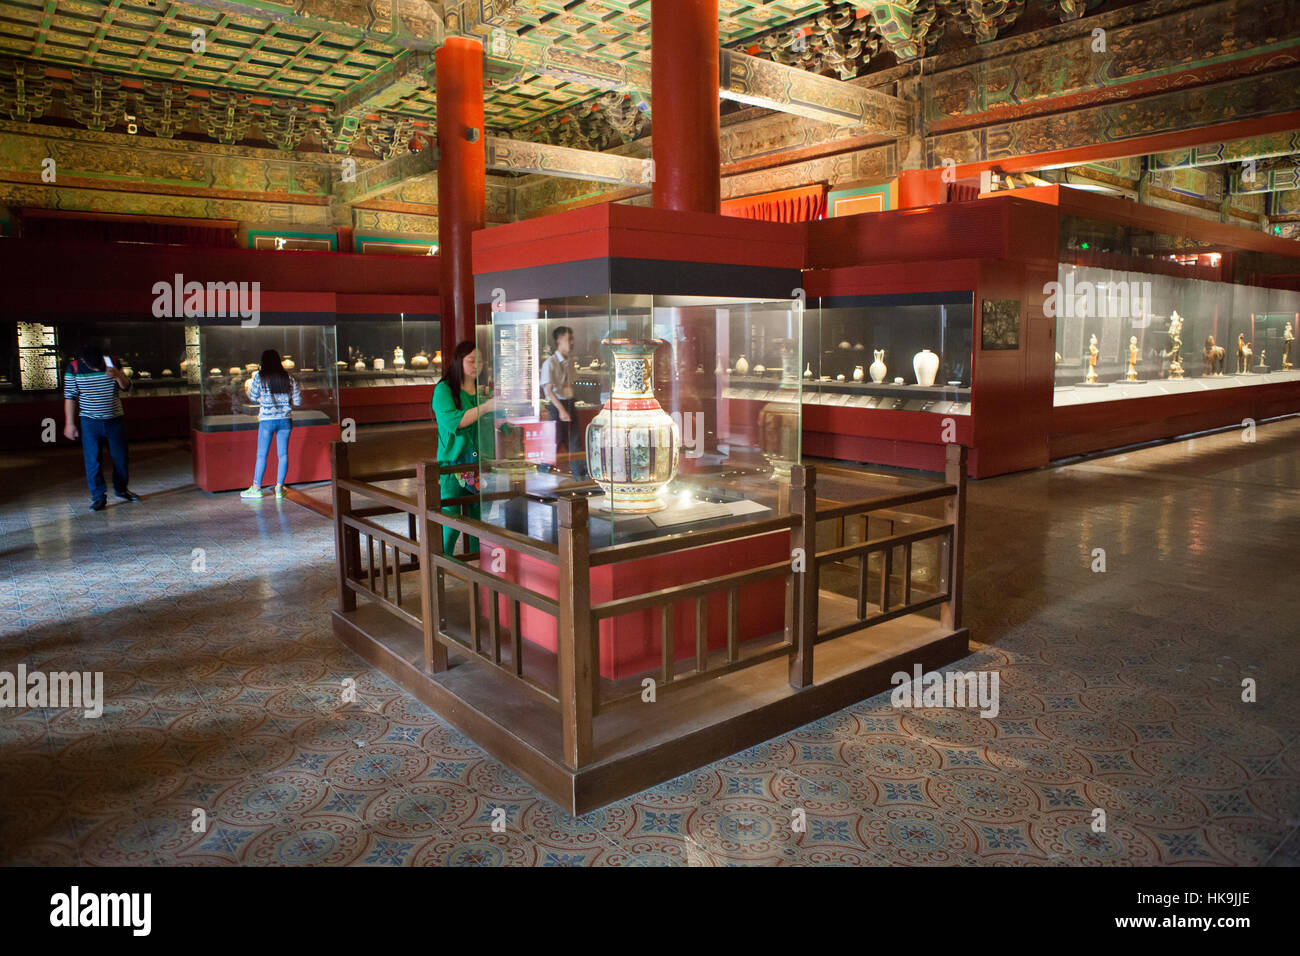 Pottery Gallery in the Hall of Literary Glory (Wenhuadian). Forbidden City, Beijing, China - Stock Image